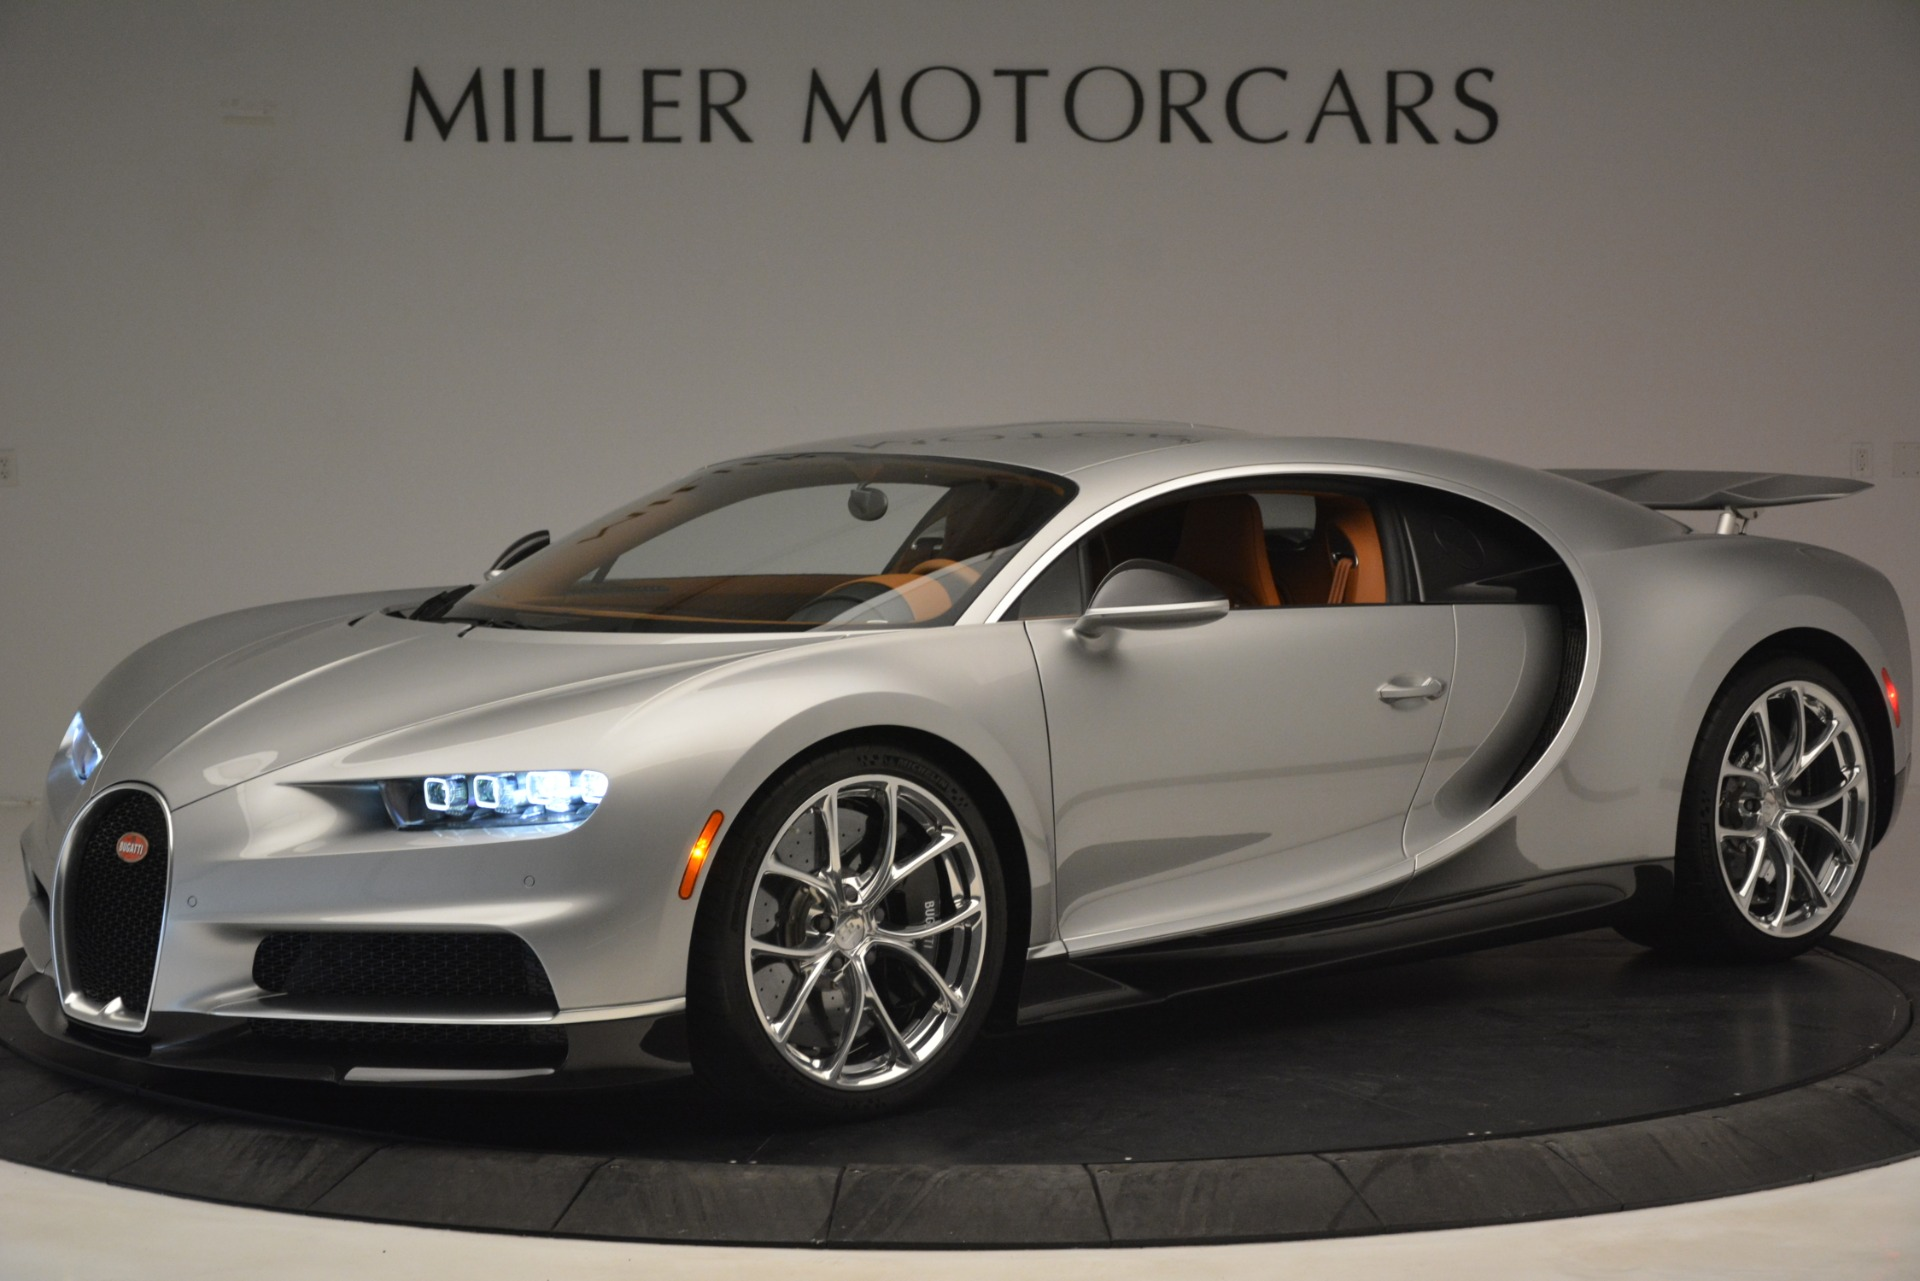 Used 2019 Bugatti Chiron for sale Sold at Bentley Greenwich in Greenwich CT 06830 1